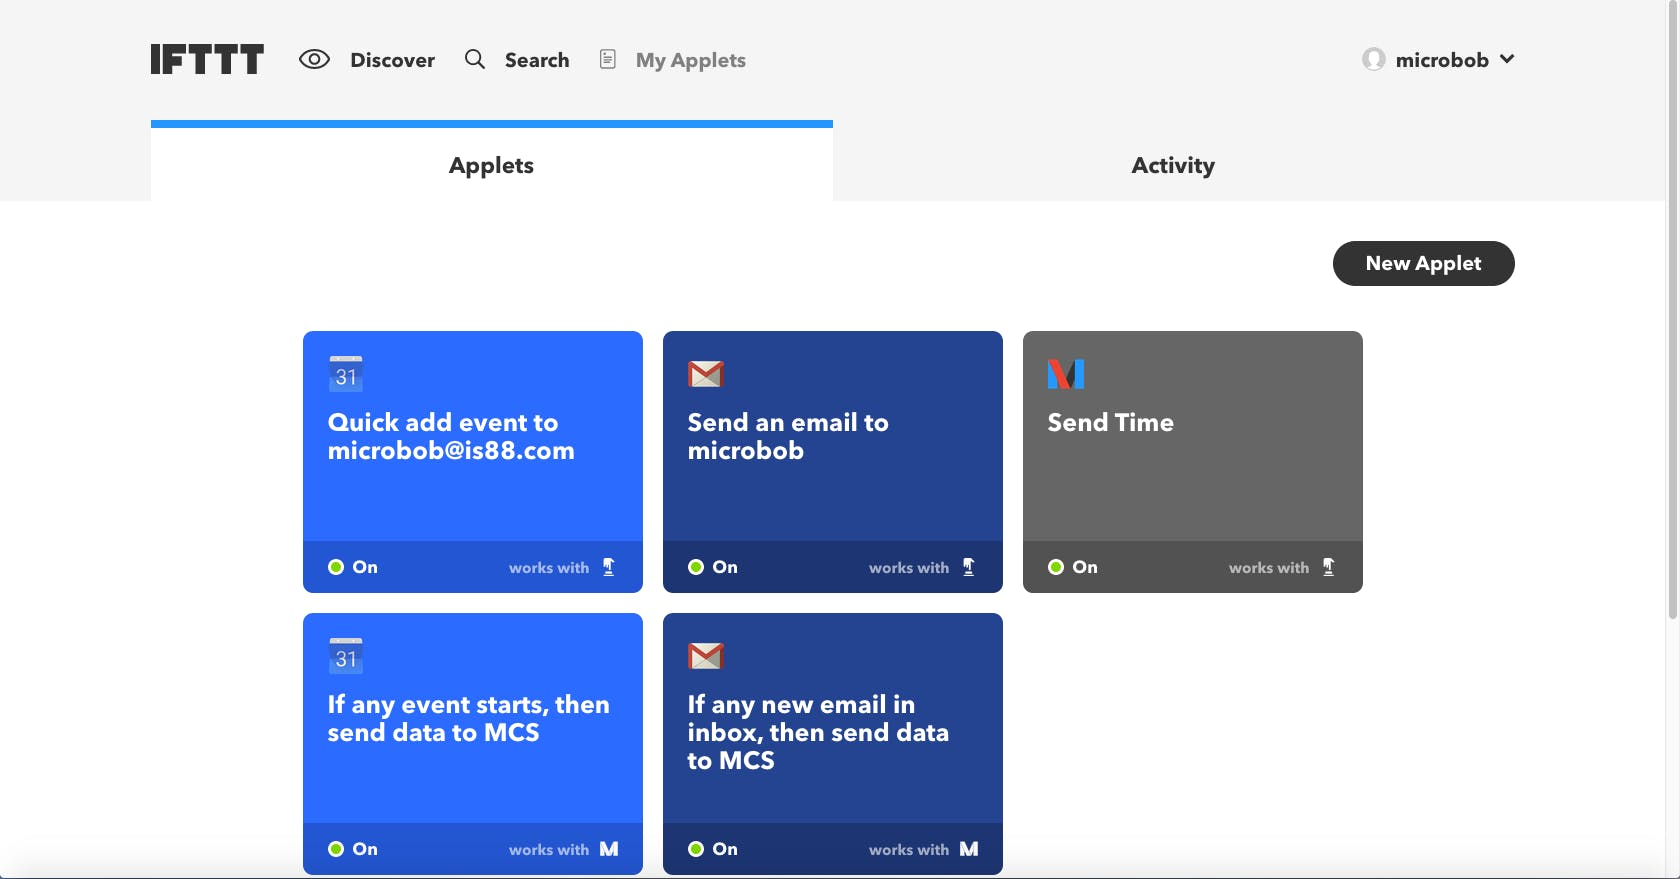 """My Applets"" page. ifttt.com/my_applets"